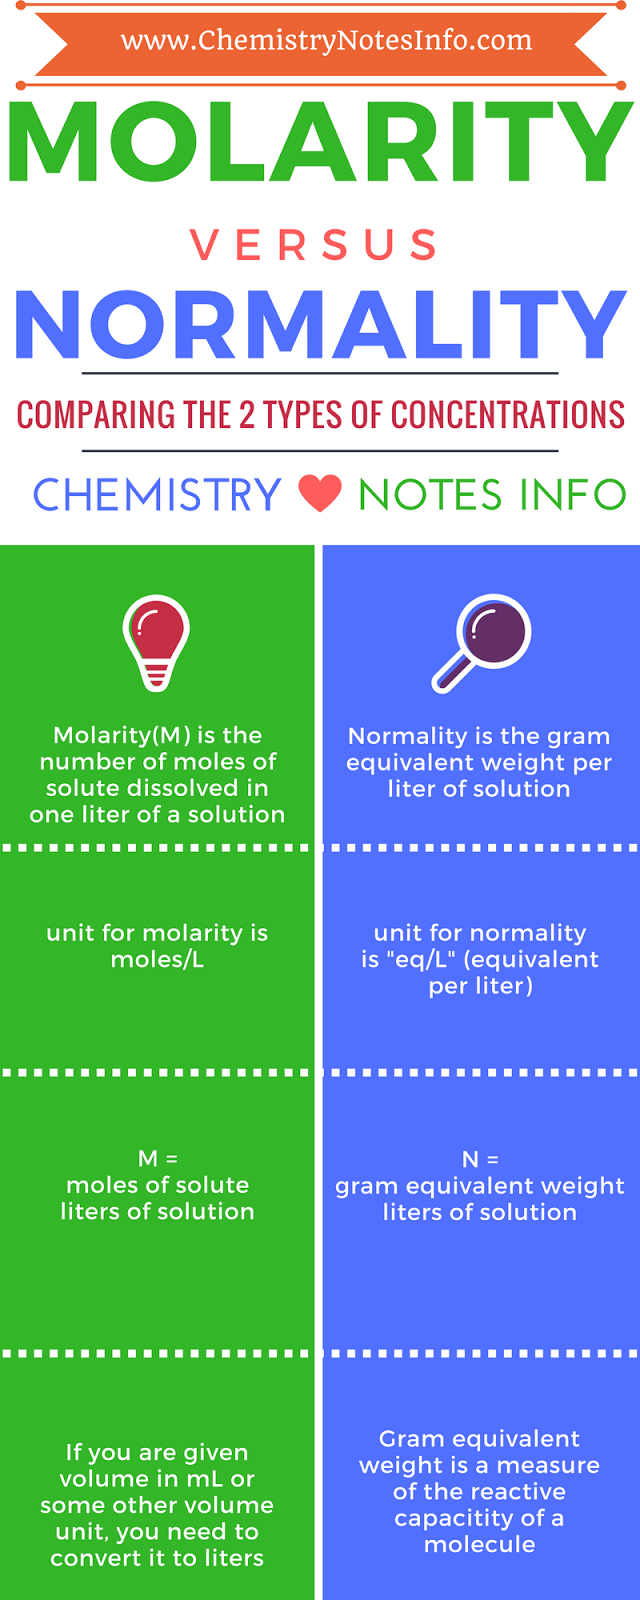 10 class periodic classification of elements chemistry notes 10 class periodic classification of elements chemistry notes info your chemistry tutor provide notes for classes bsc msc chemistry test gamestrikefo Image collections